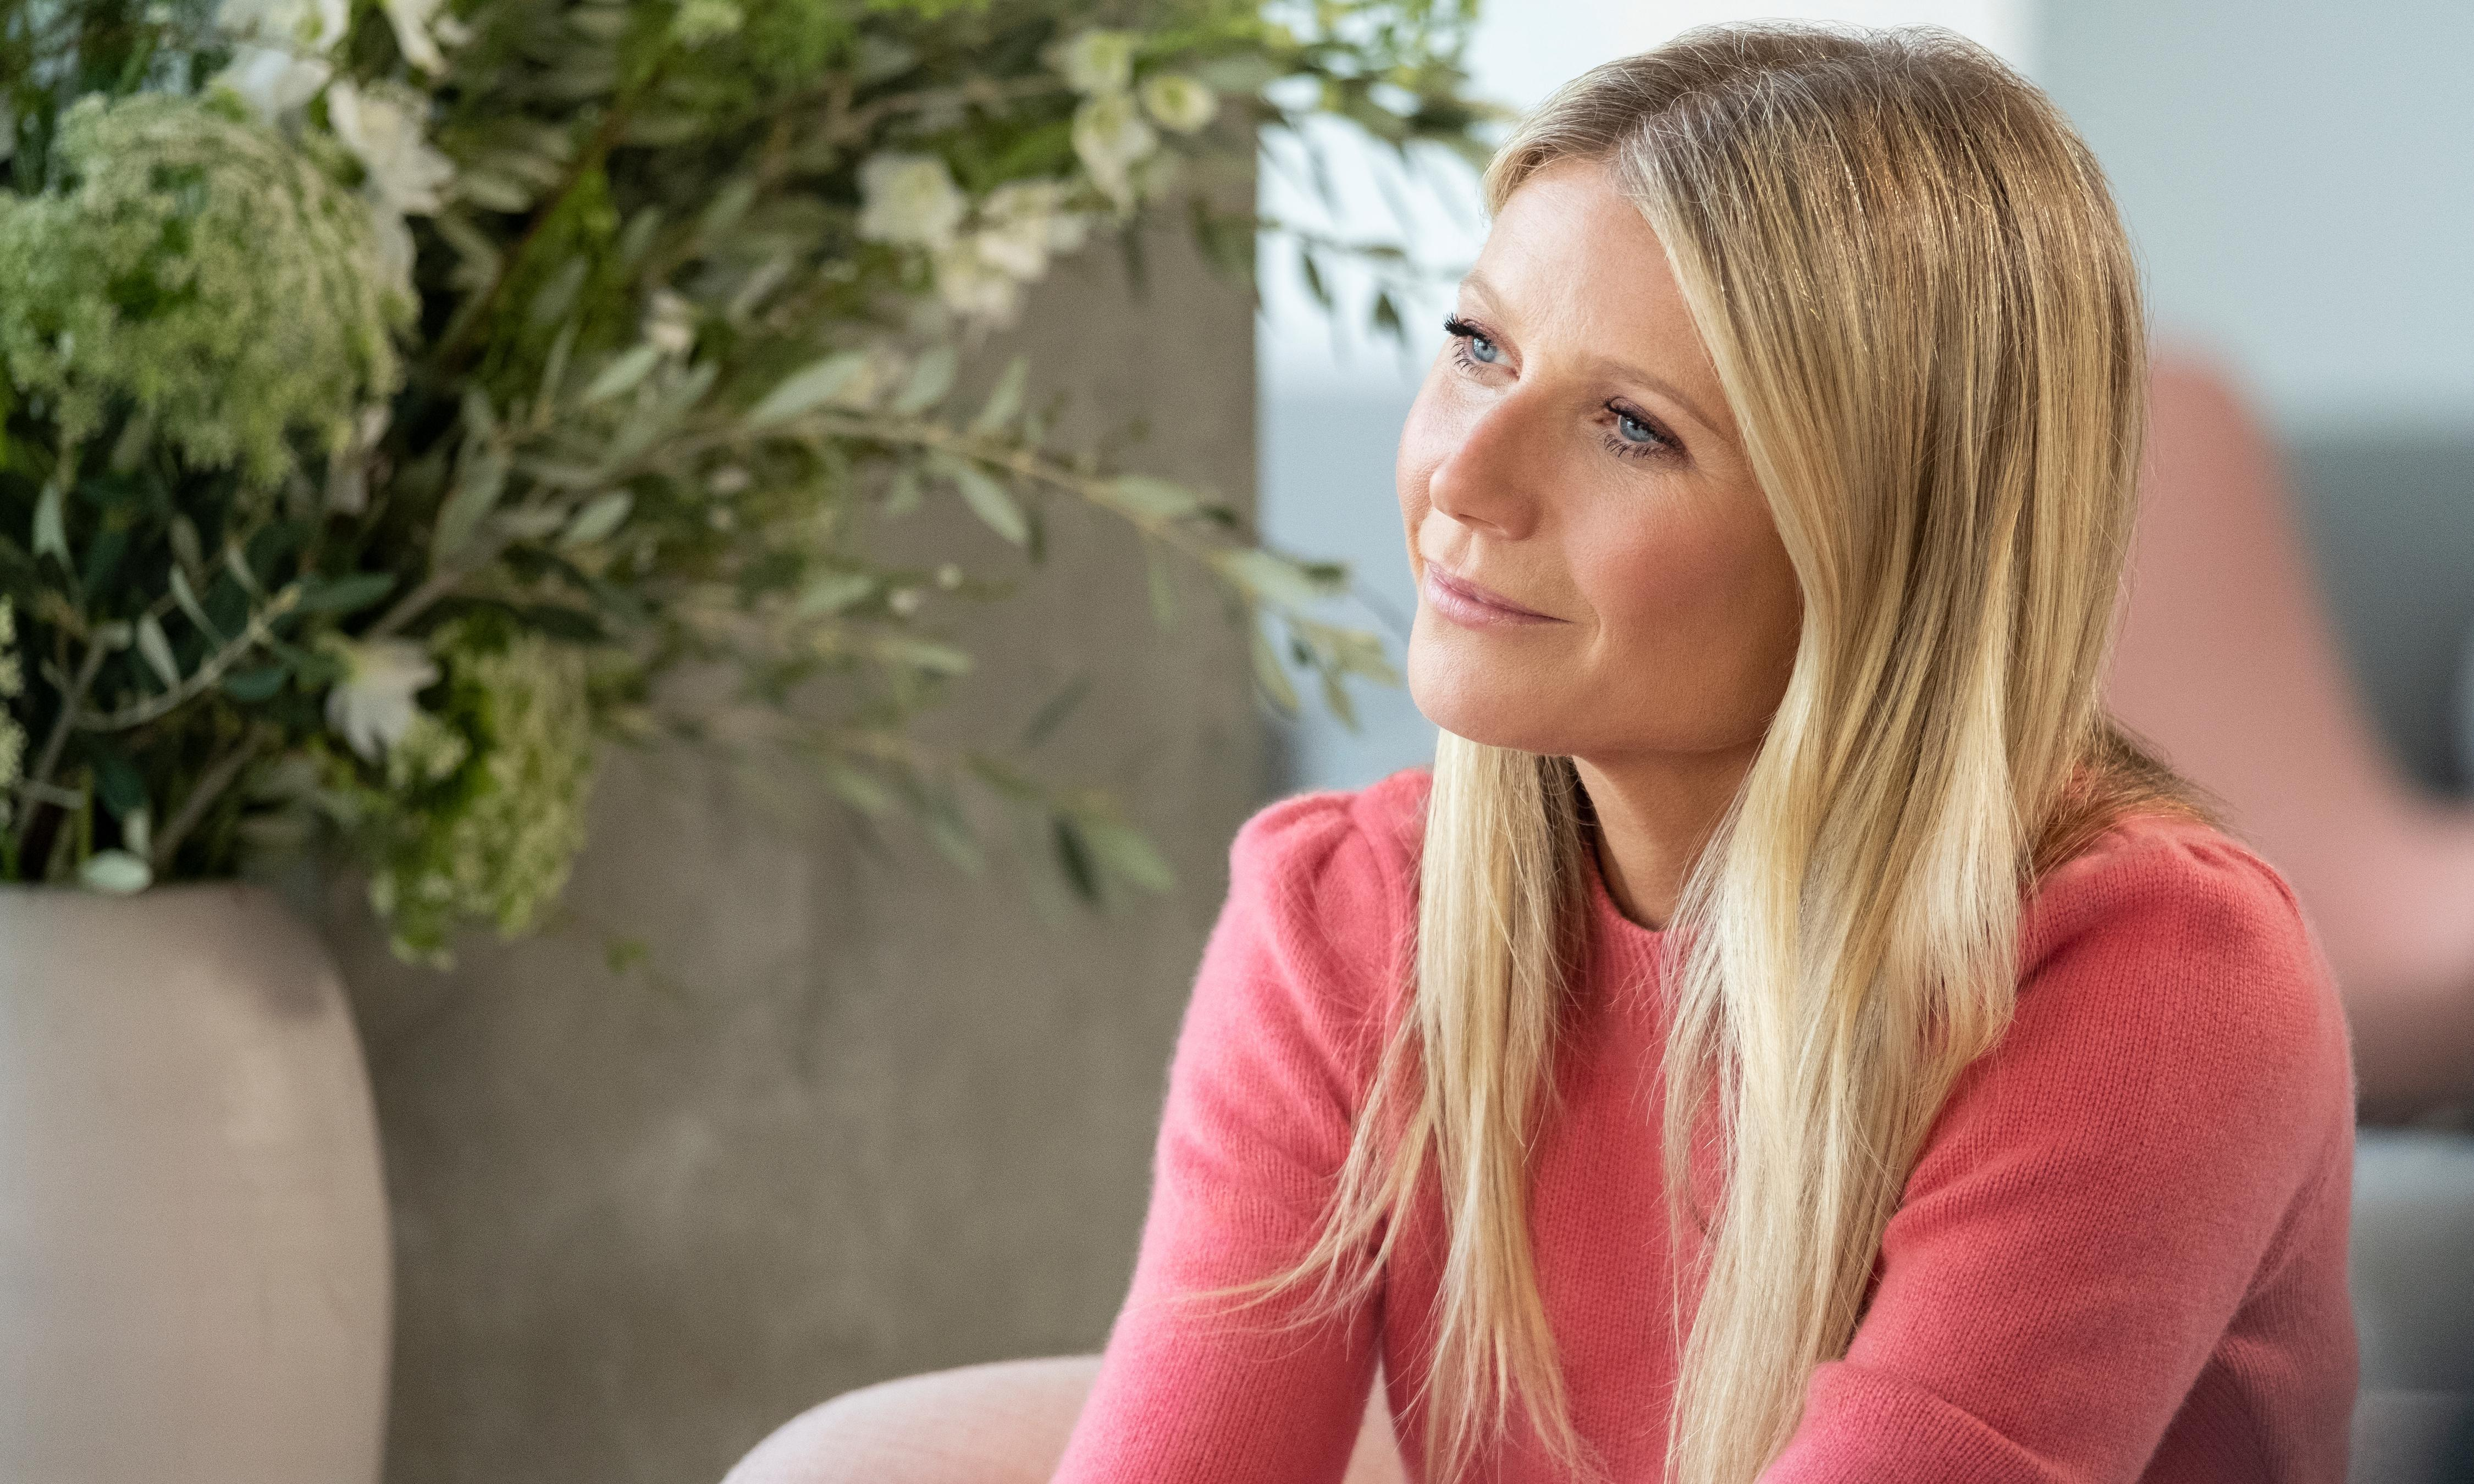 Psychedelics have lost their cool. Blame Gwyneth Paltrow